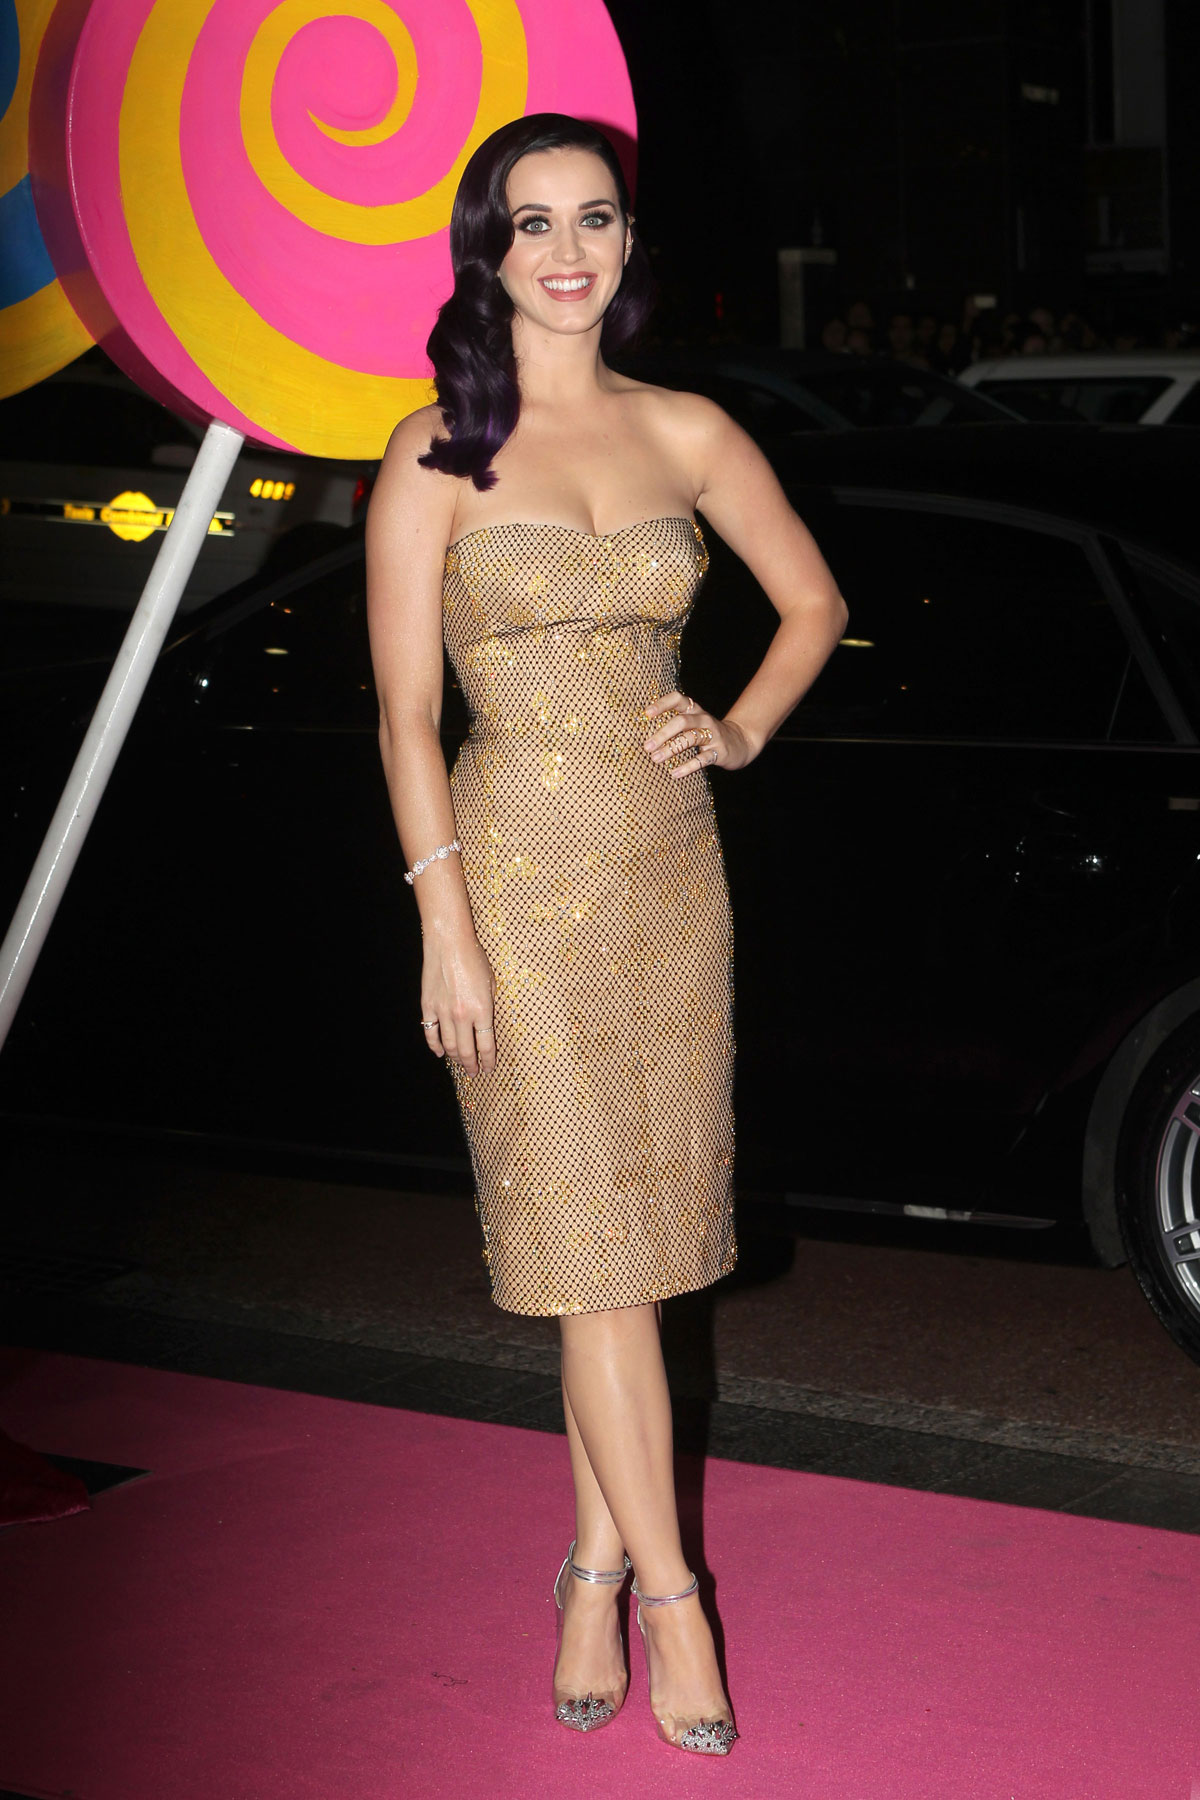 Who is katy perry dating in Sydney